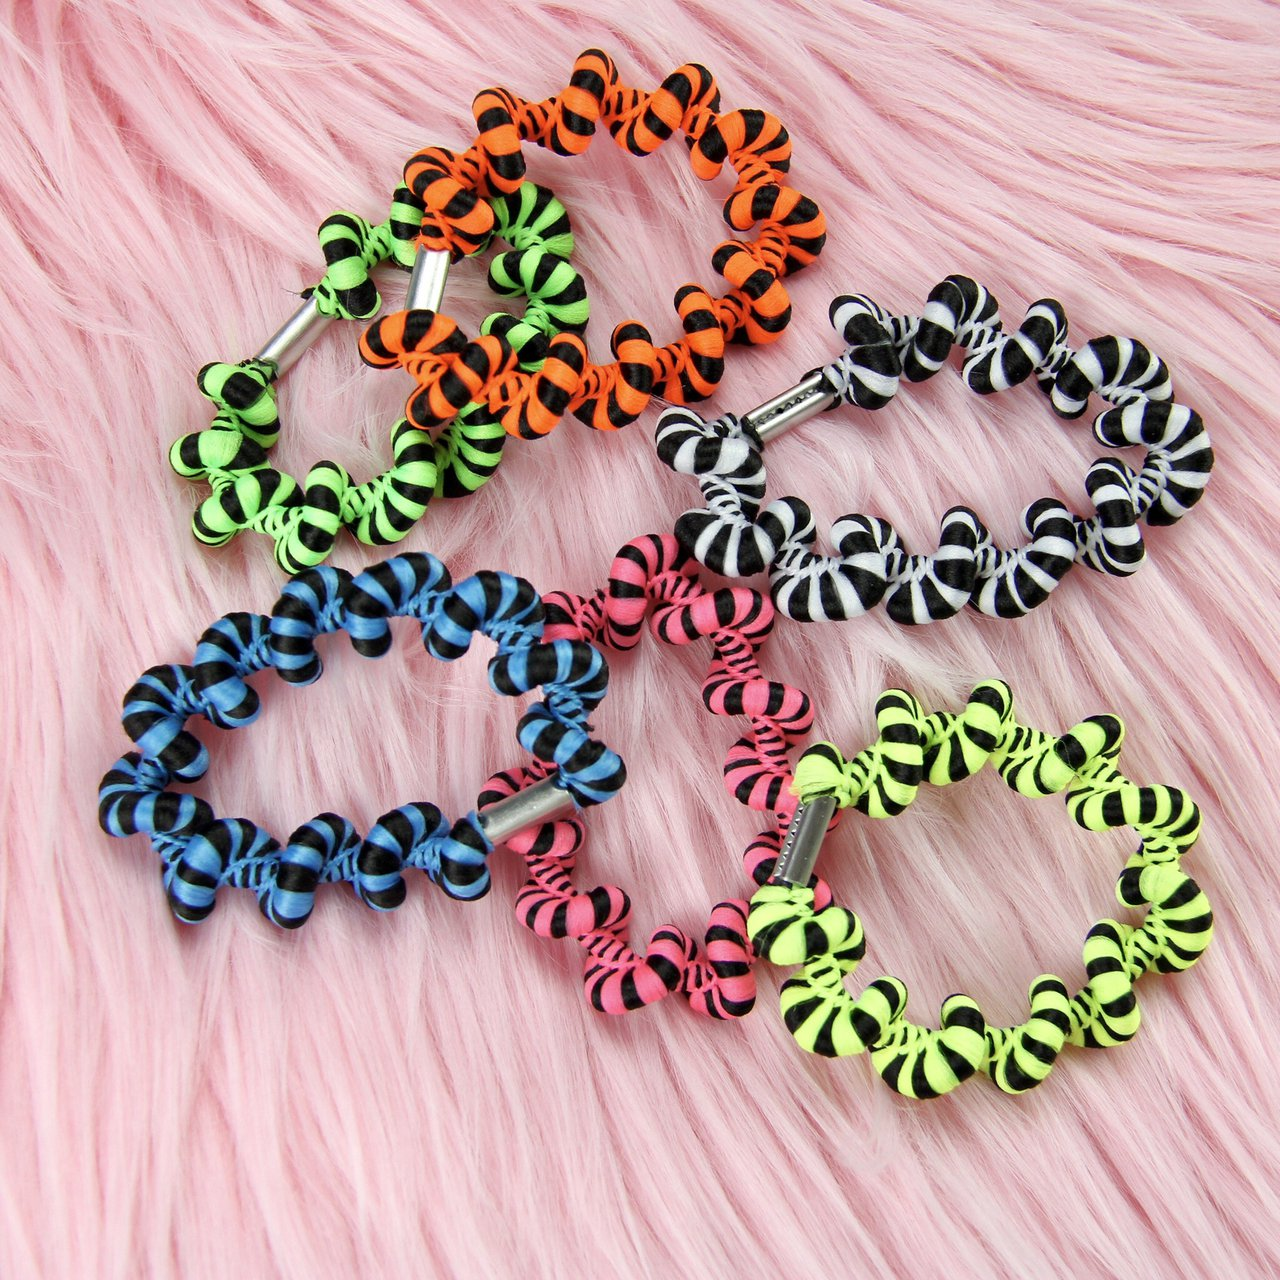 Trippy swirly hair ties in the coolest colors. Perfect for a - Depop 7bb955391b9